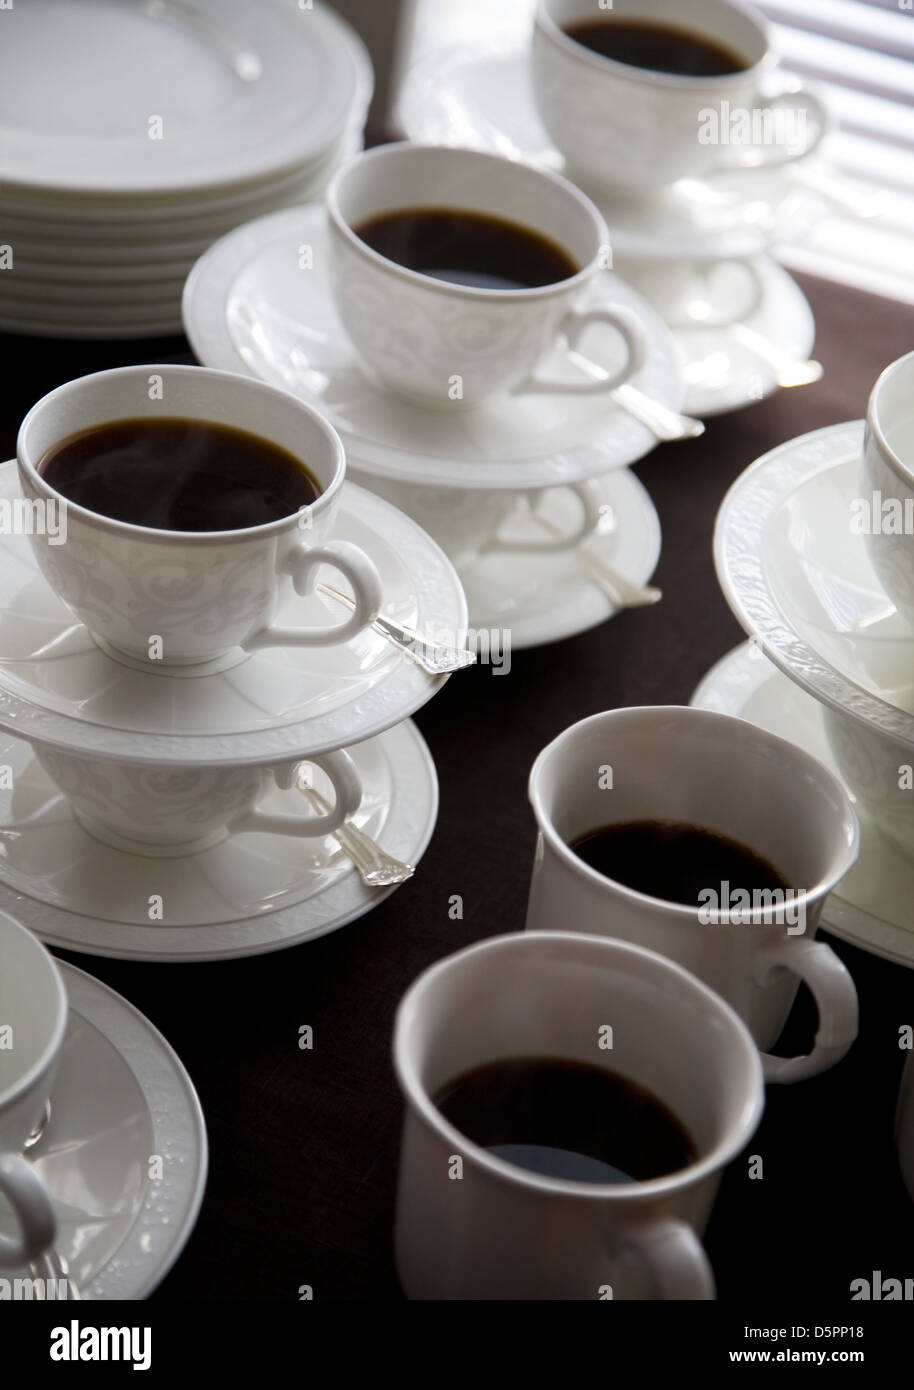 ac6f0743ea0 Fancy coffee cups filled with hot coffee Stock Photo: 55204612 - Alamy